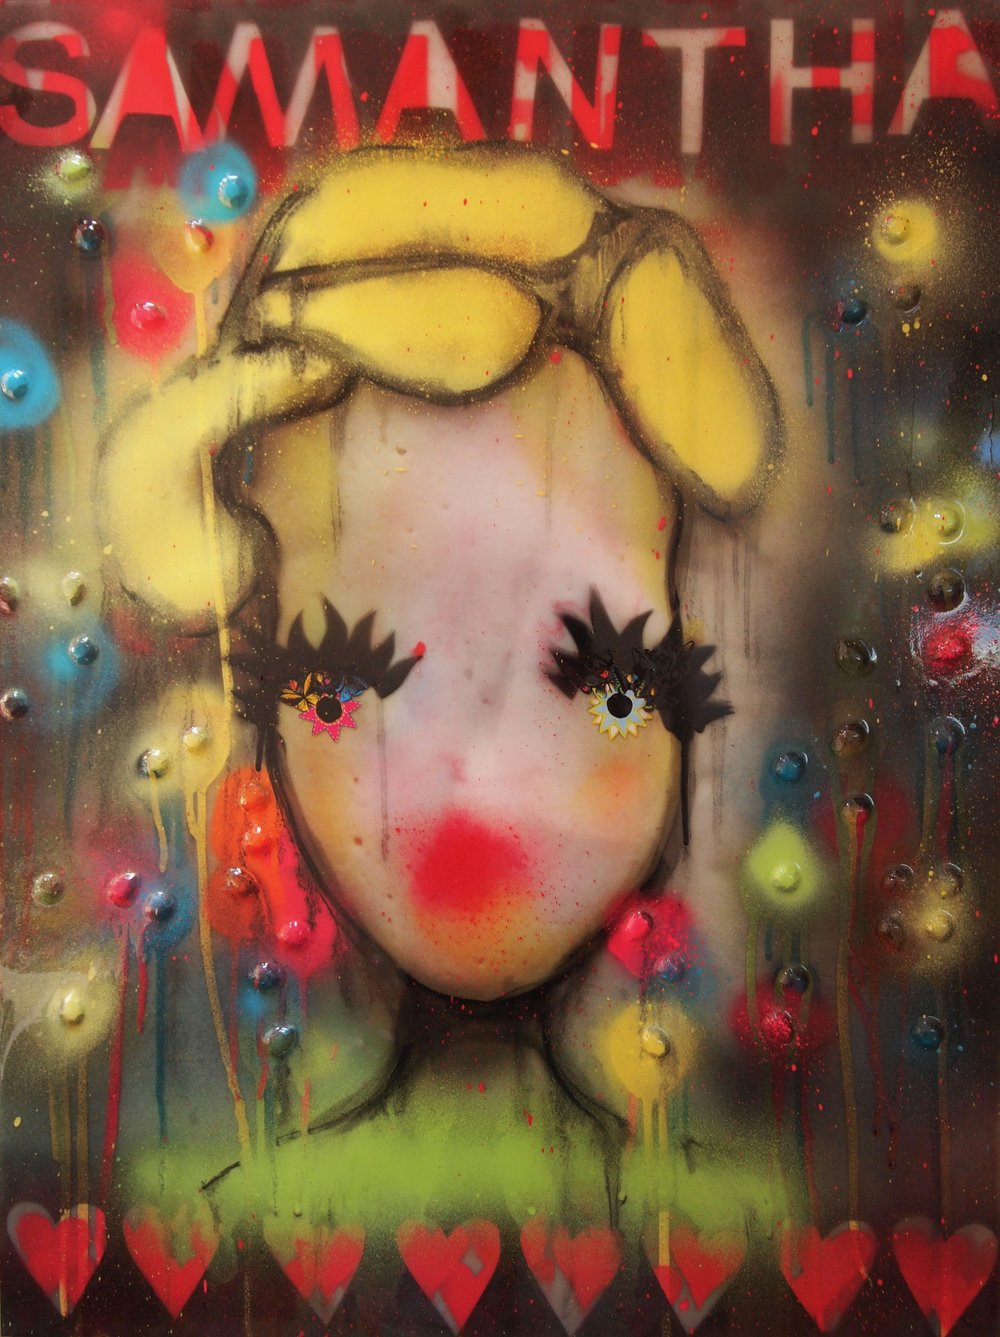 samantha (beautiful monster/hot mess)  22x29  image backprinted onto glass, spraypaint, mixed media